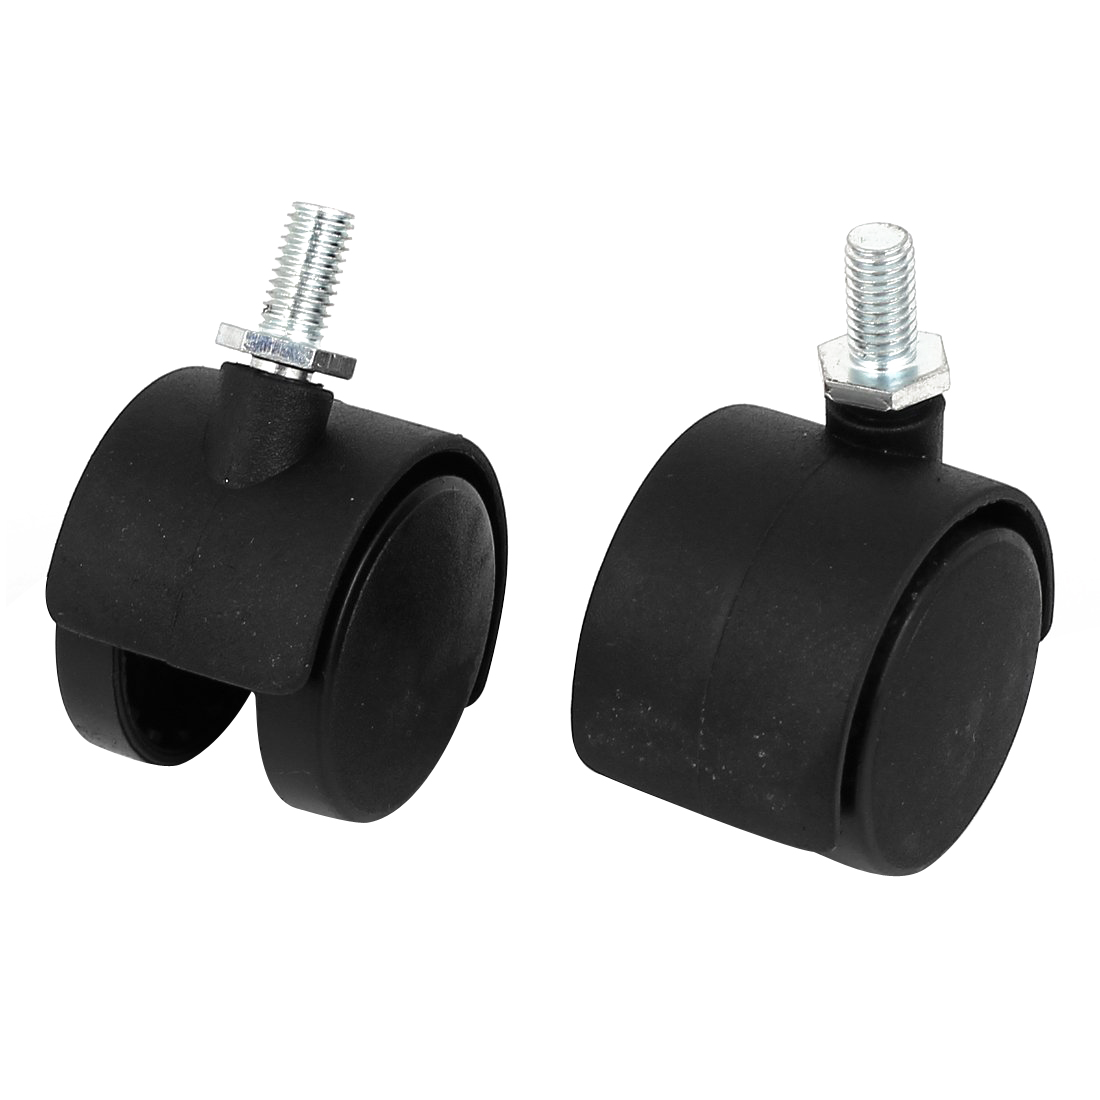 8mm Threaded Stem 1.5 Inch Dia Wheel Chair Swivel Caster 2 Pcs Black xiaomi yi smart car dvr 1080p 160 wifi 240mah for android